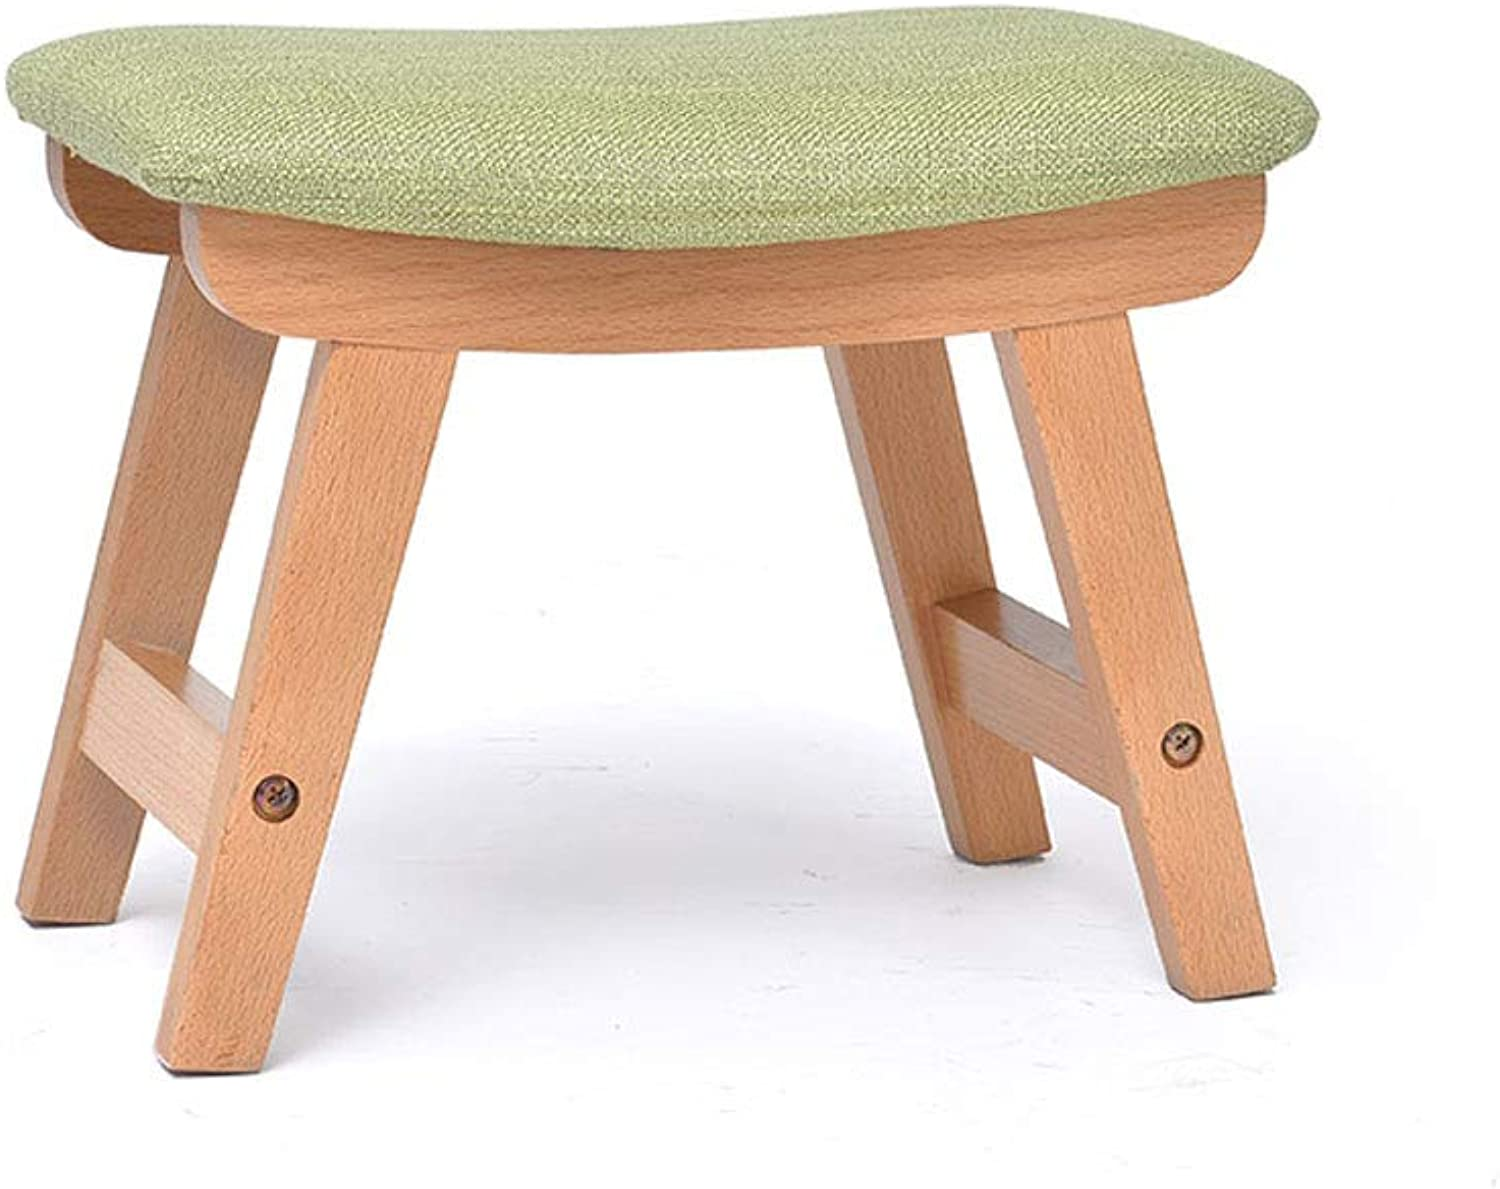 Wooden Stool, Four-Leg Sponge Soft Cushion Creative Cloth Washable Foot Stool Low Stool (color   Log color Matcha)